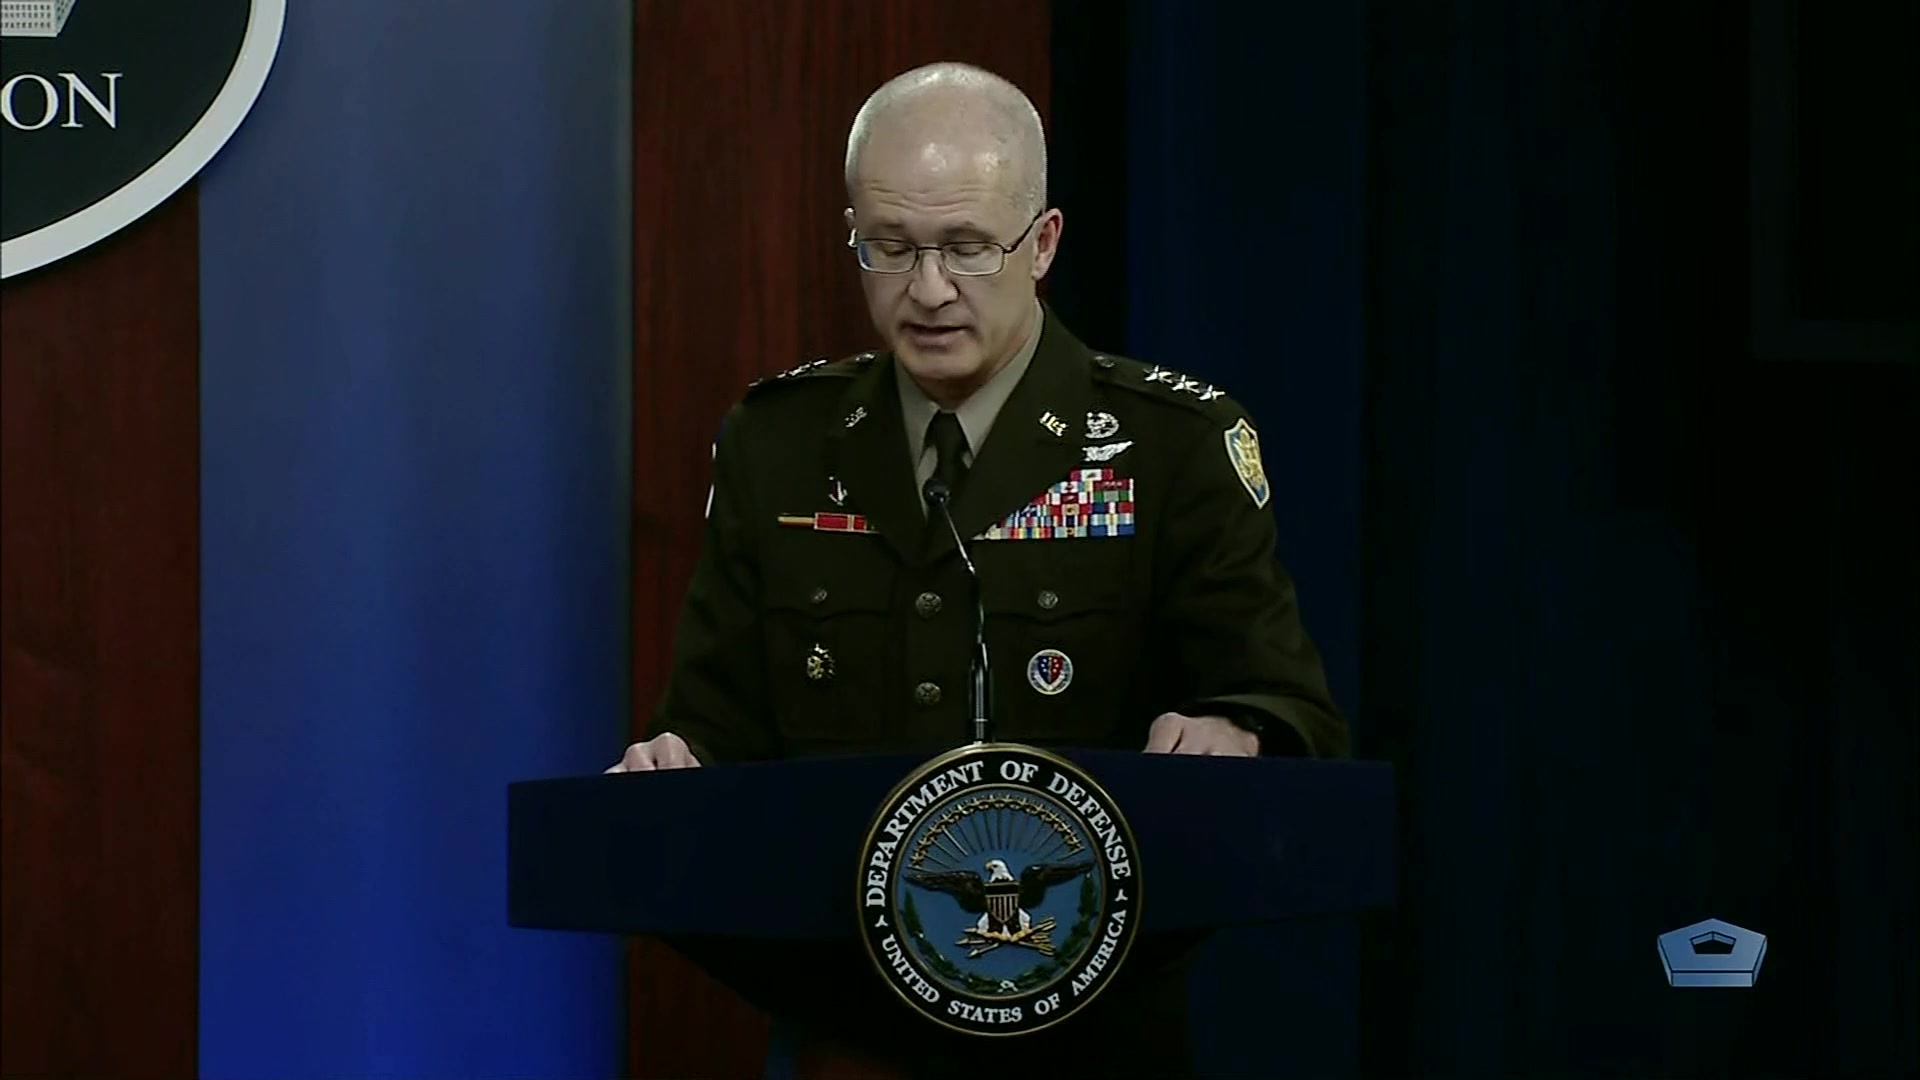 A military official speaks at a lectern.